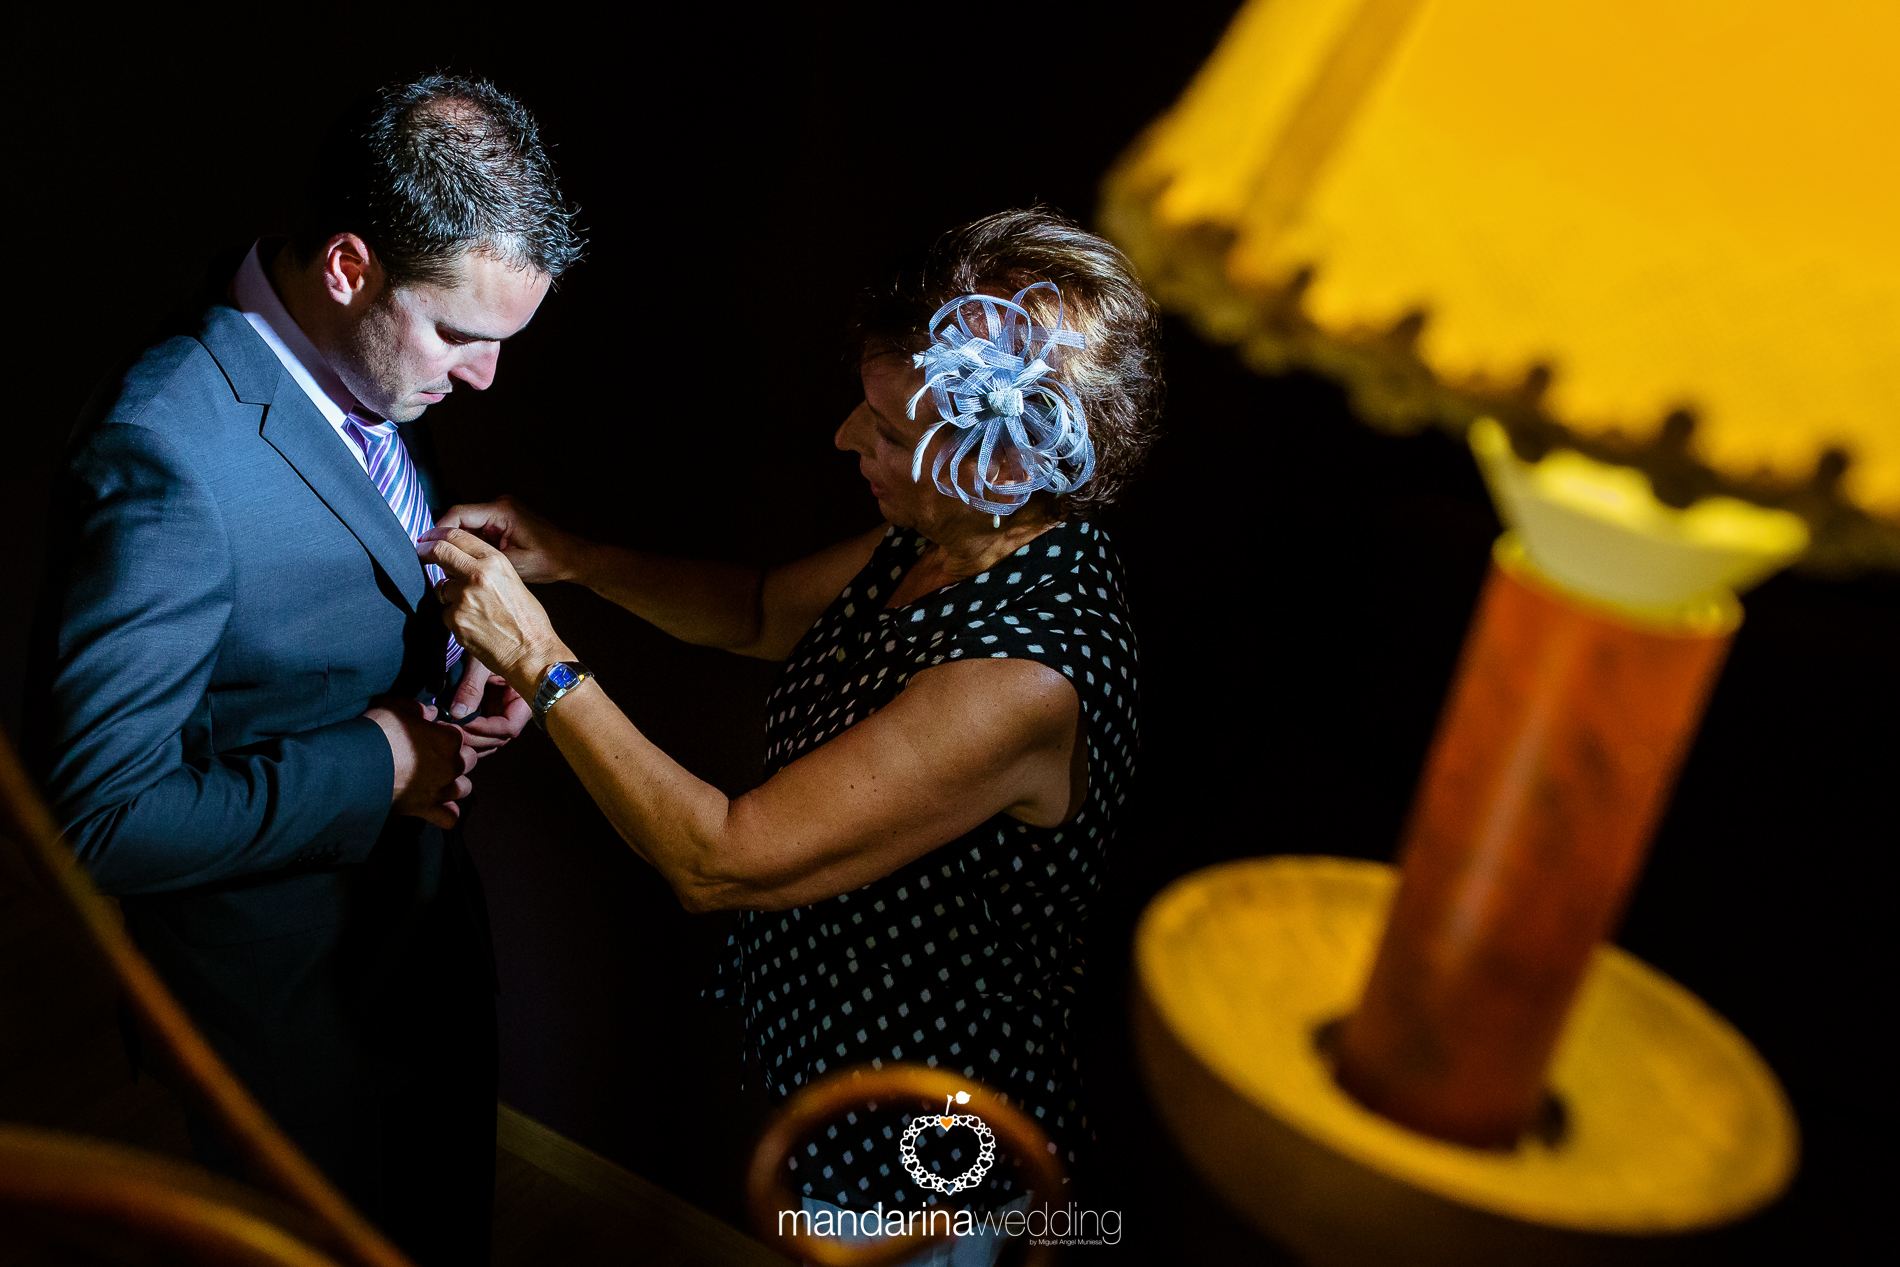 mandarina wedding_13